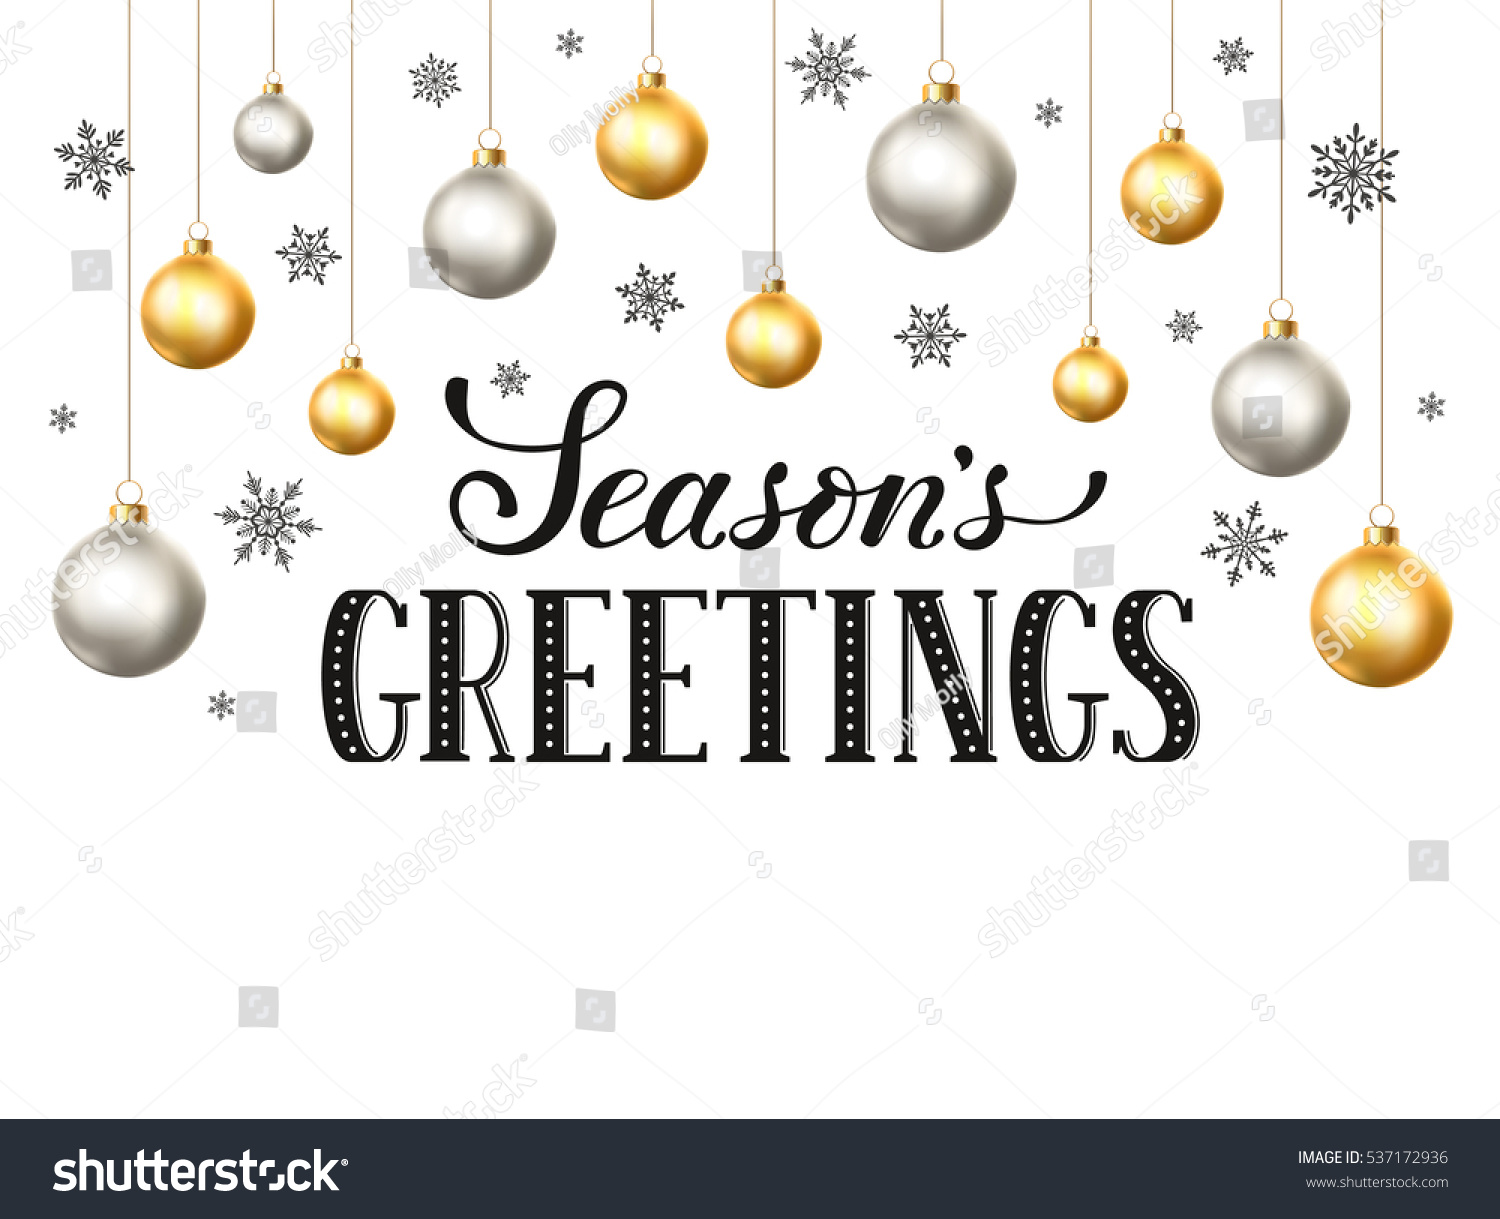 Happy Holidays Card Template from image.shutterstock.com